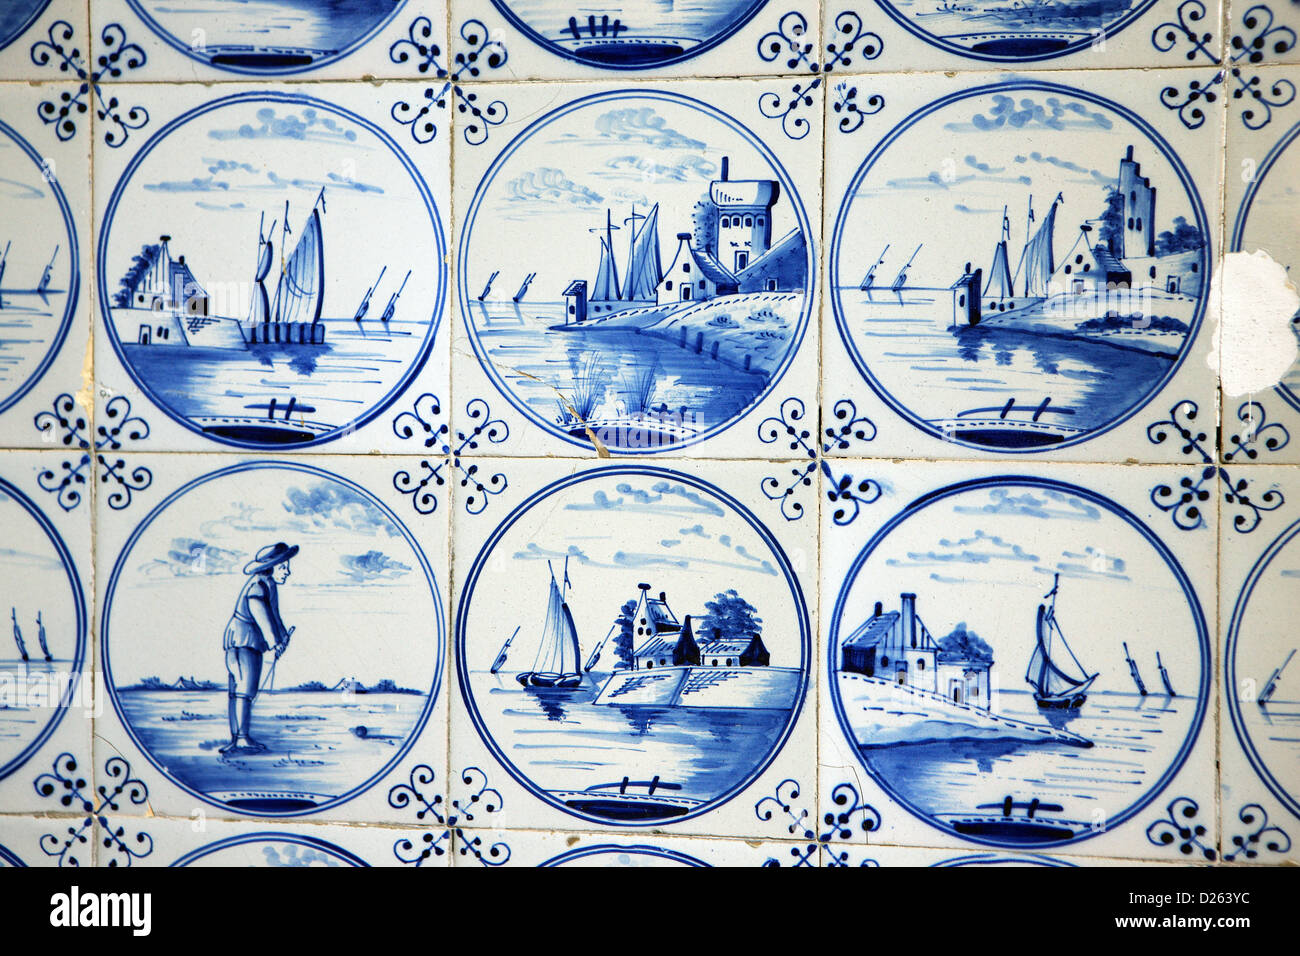 Dutch blue and white Delftware tiles at the entrance to a building in Amsterdam - Stock Image